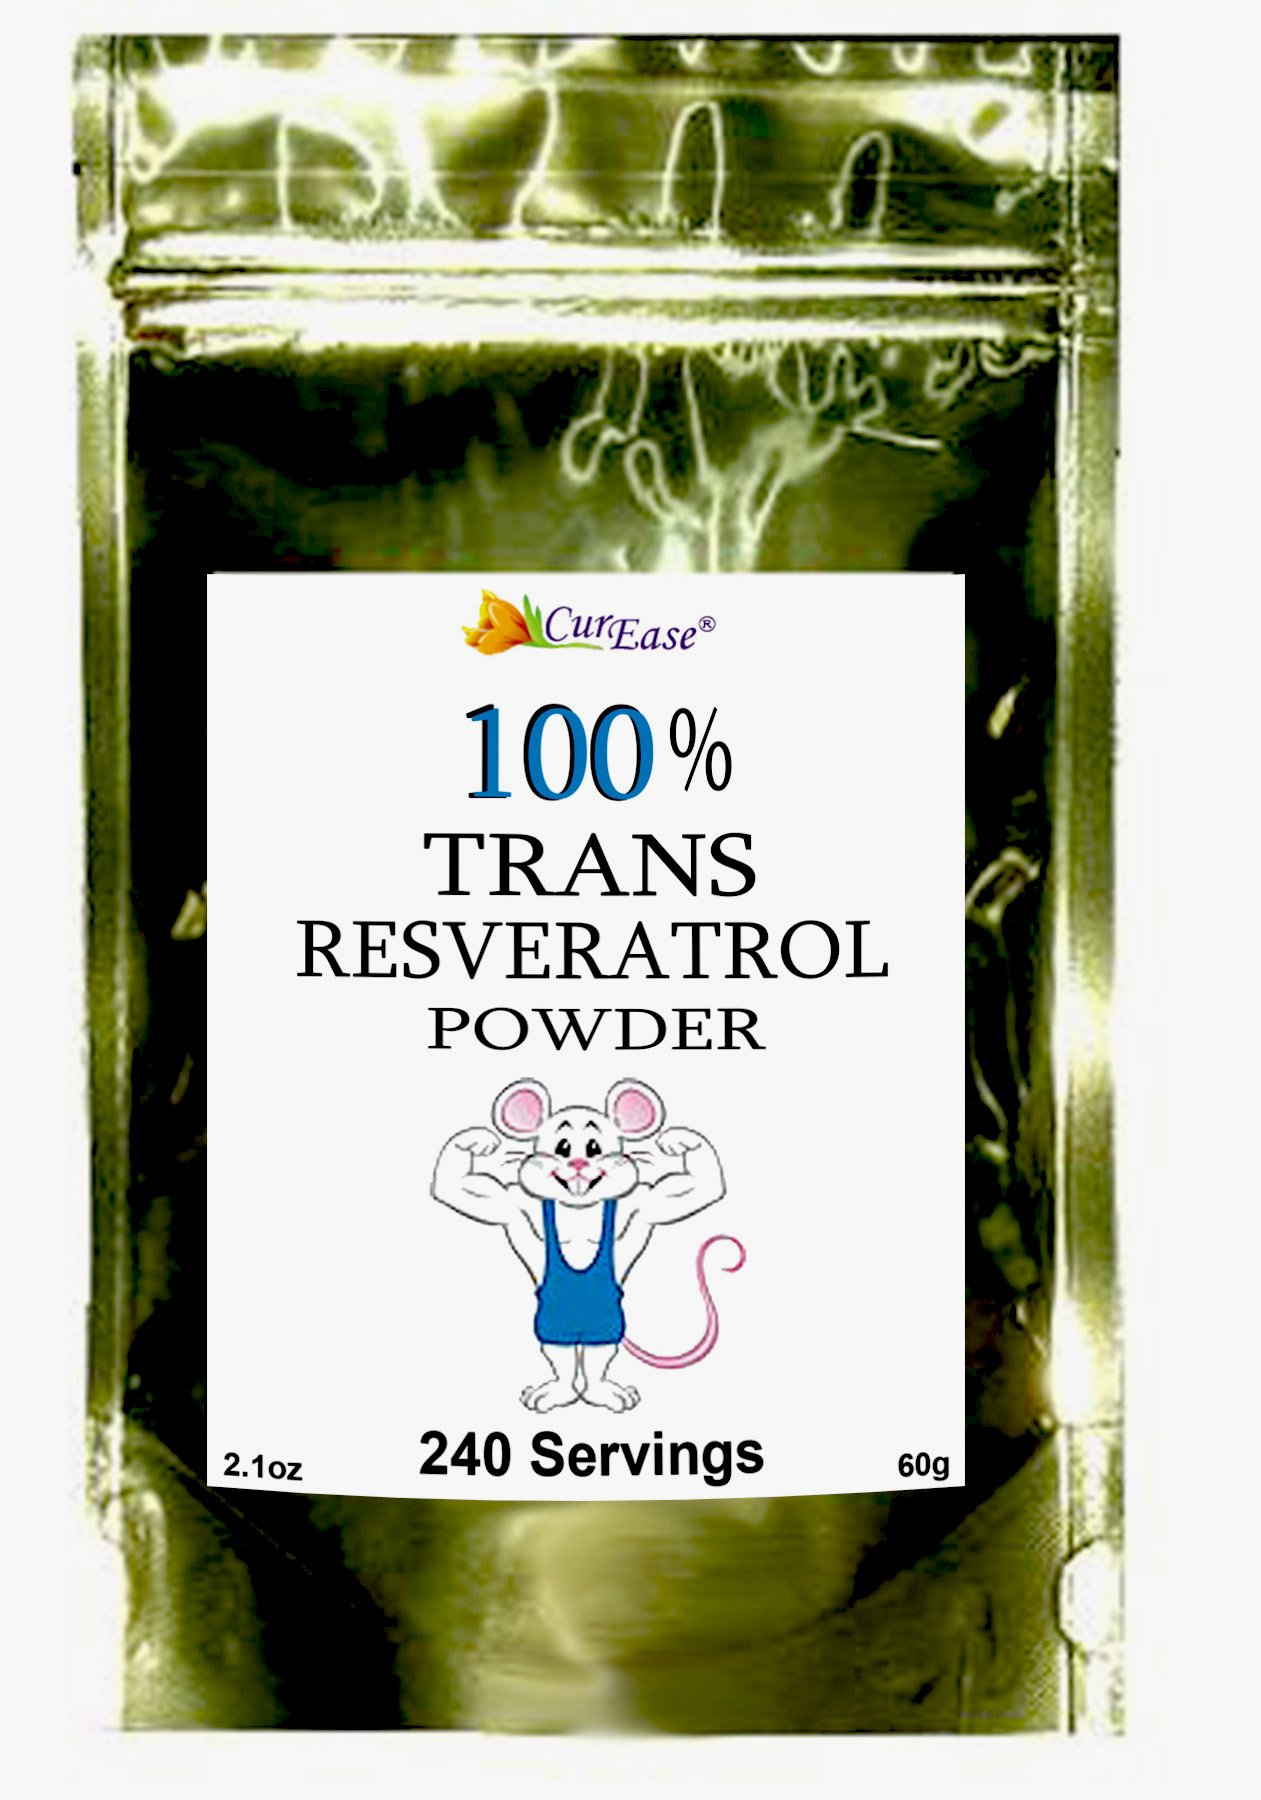 CurEase 100% Pure Trans Resveratrol Powder 240 Servings (60 Grams) 250mg Per Servings by CurEase